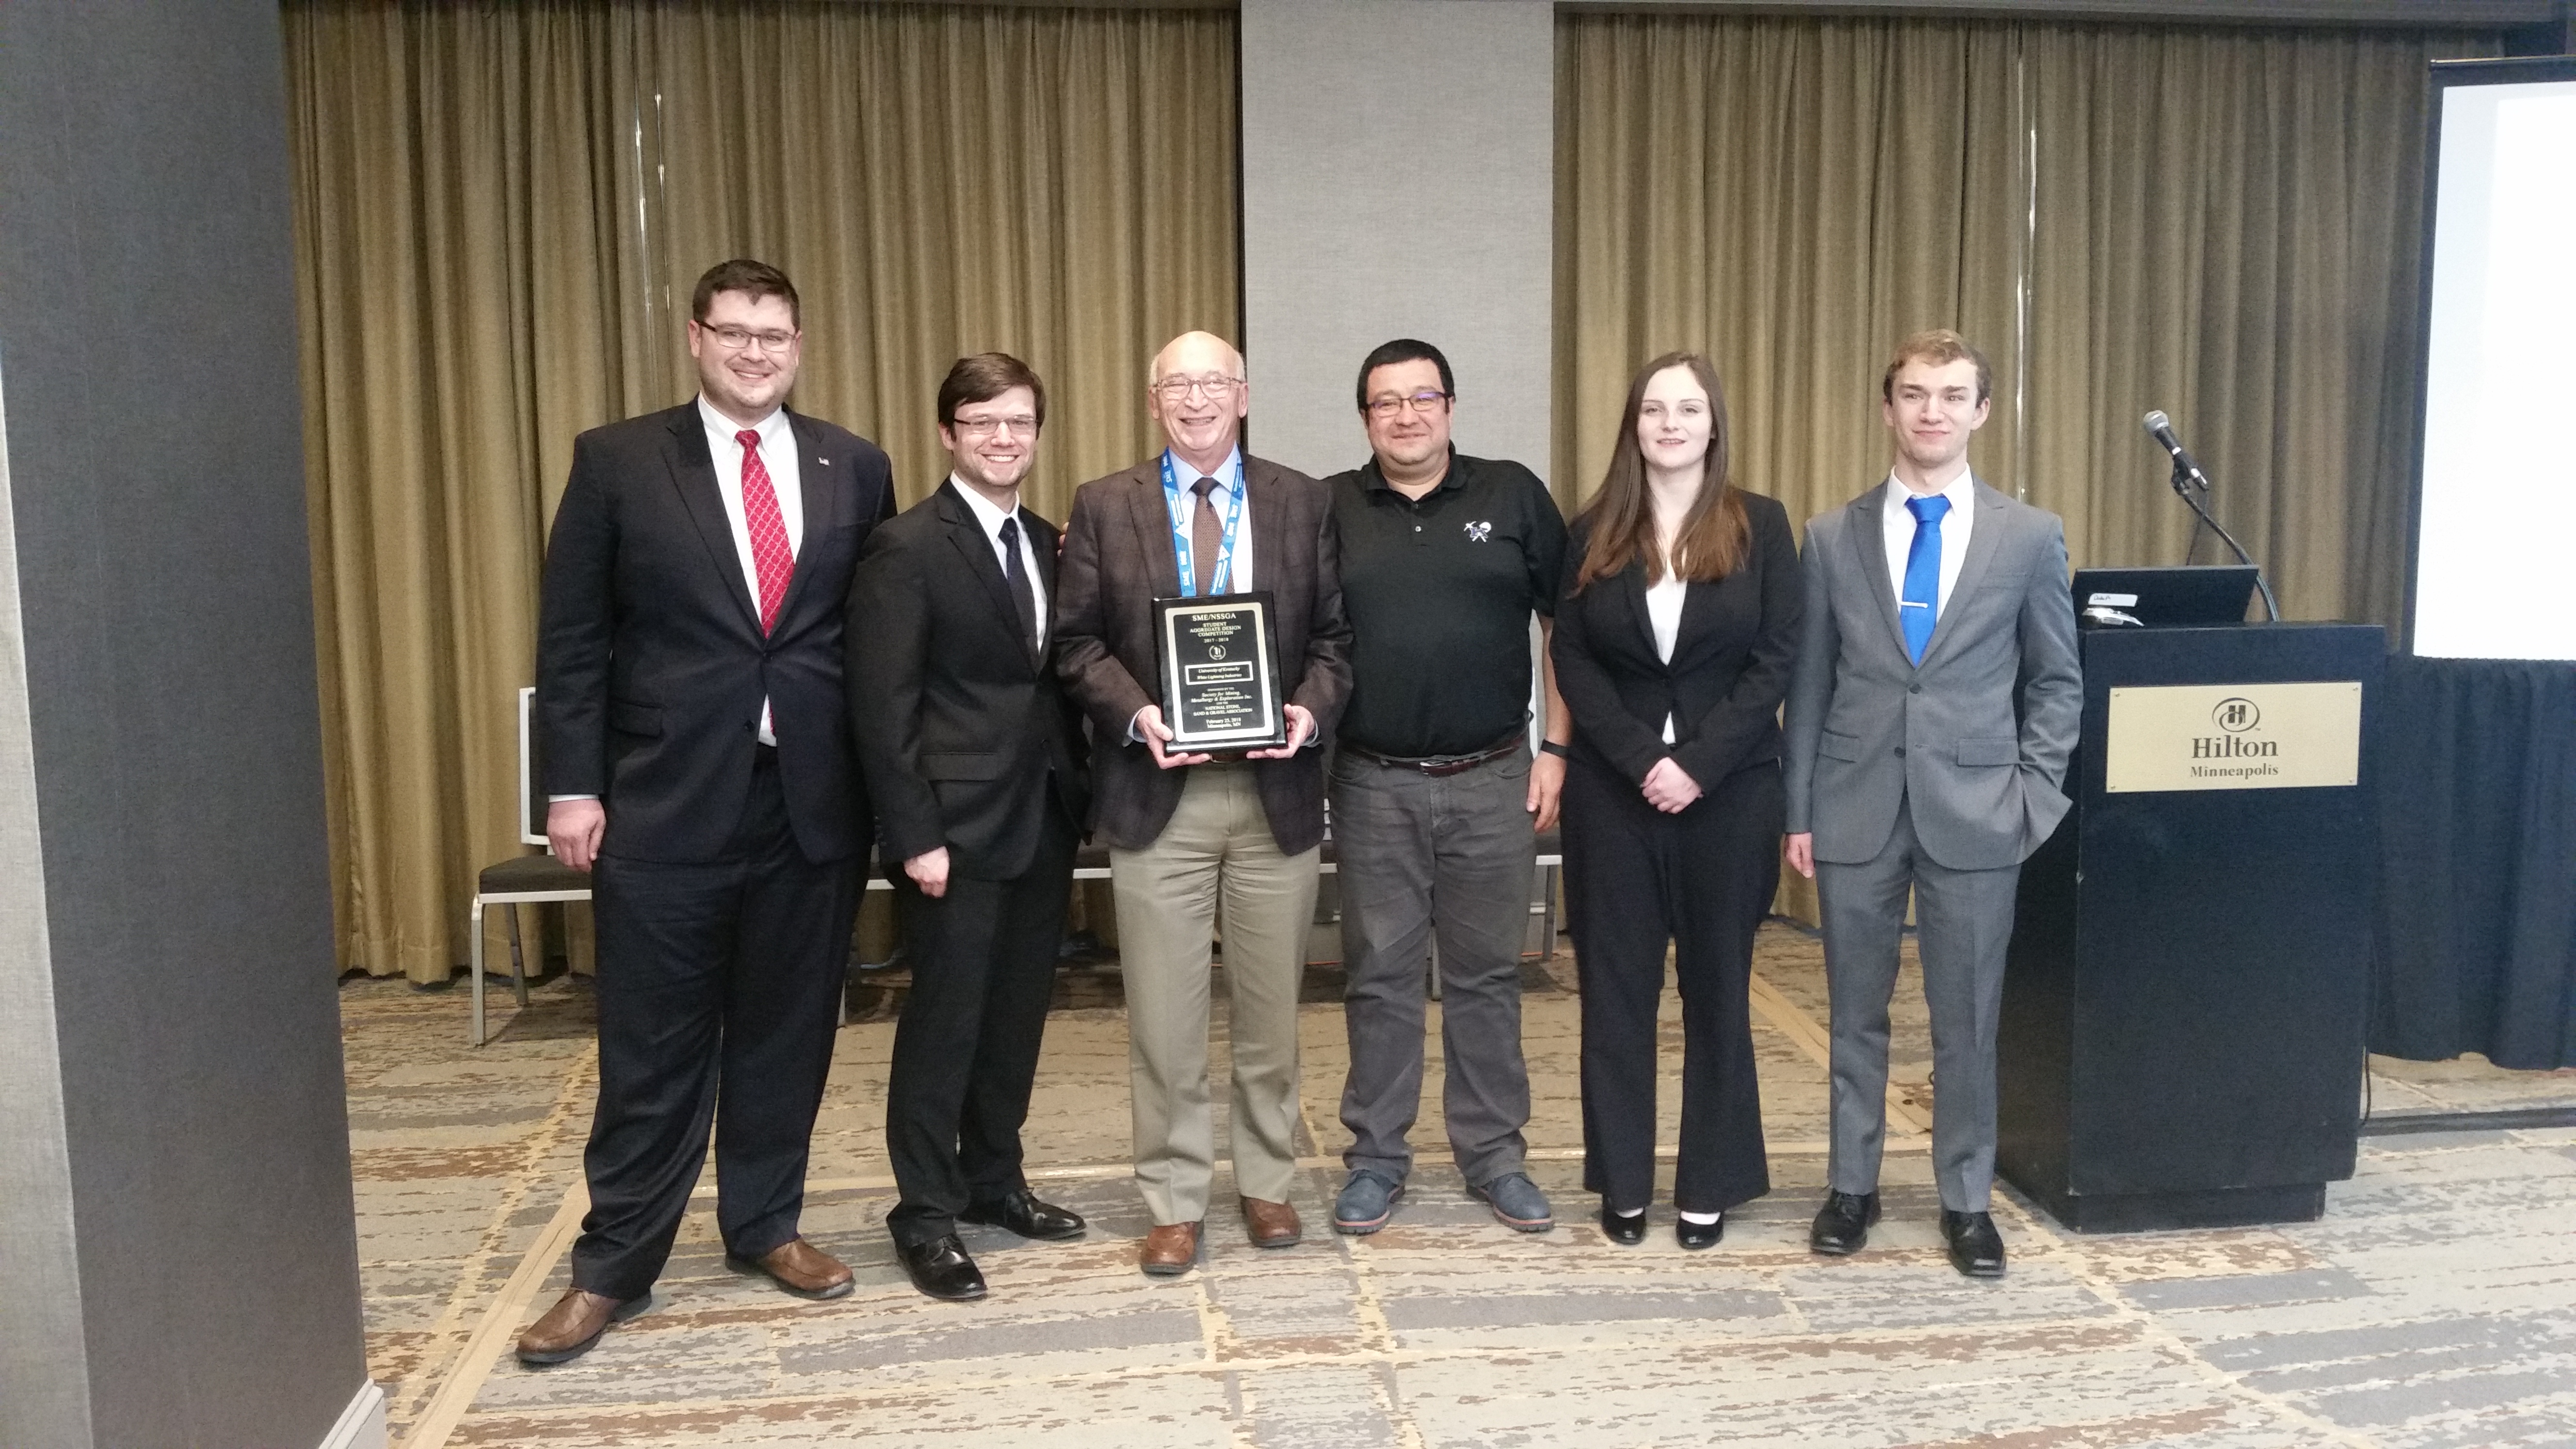 From left to right: George Thompson, Chandler Absher, Dr. Tom Novak, Dr. Jhon Silva, Hannah Parker, Trevor Rosania